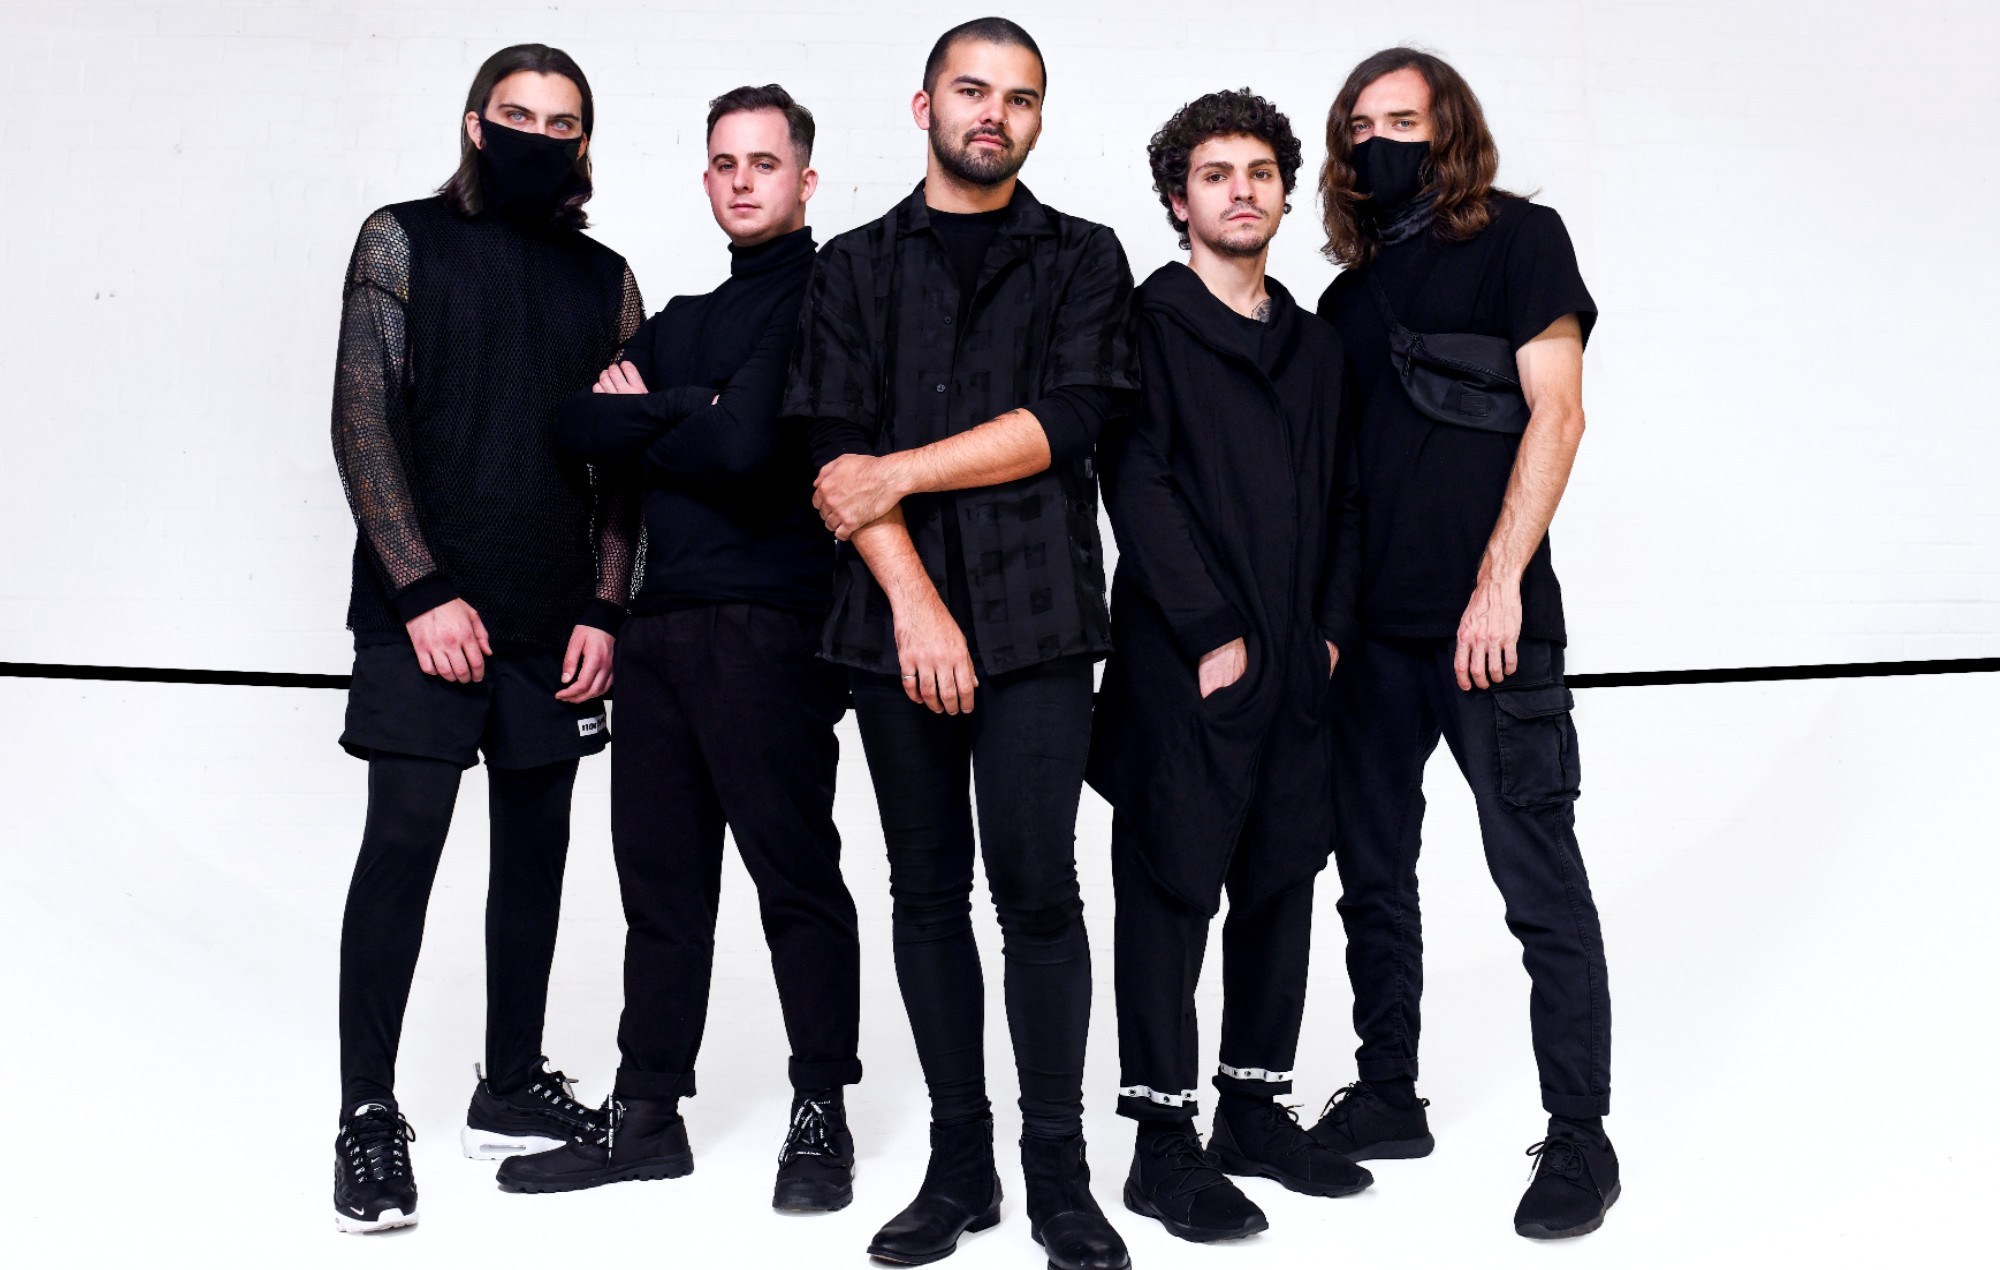 """WATCH NORTHLANE PERFORM """"BLOODLINE"""" FROM 'LIVE AT THE ROUNDHOUSE'"""